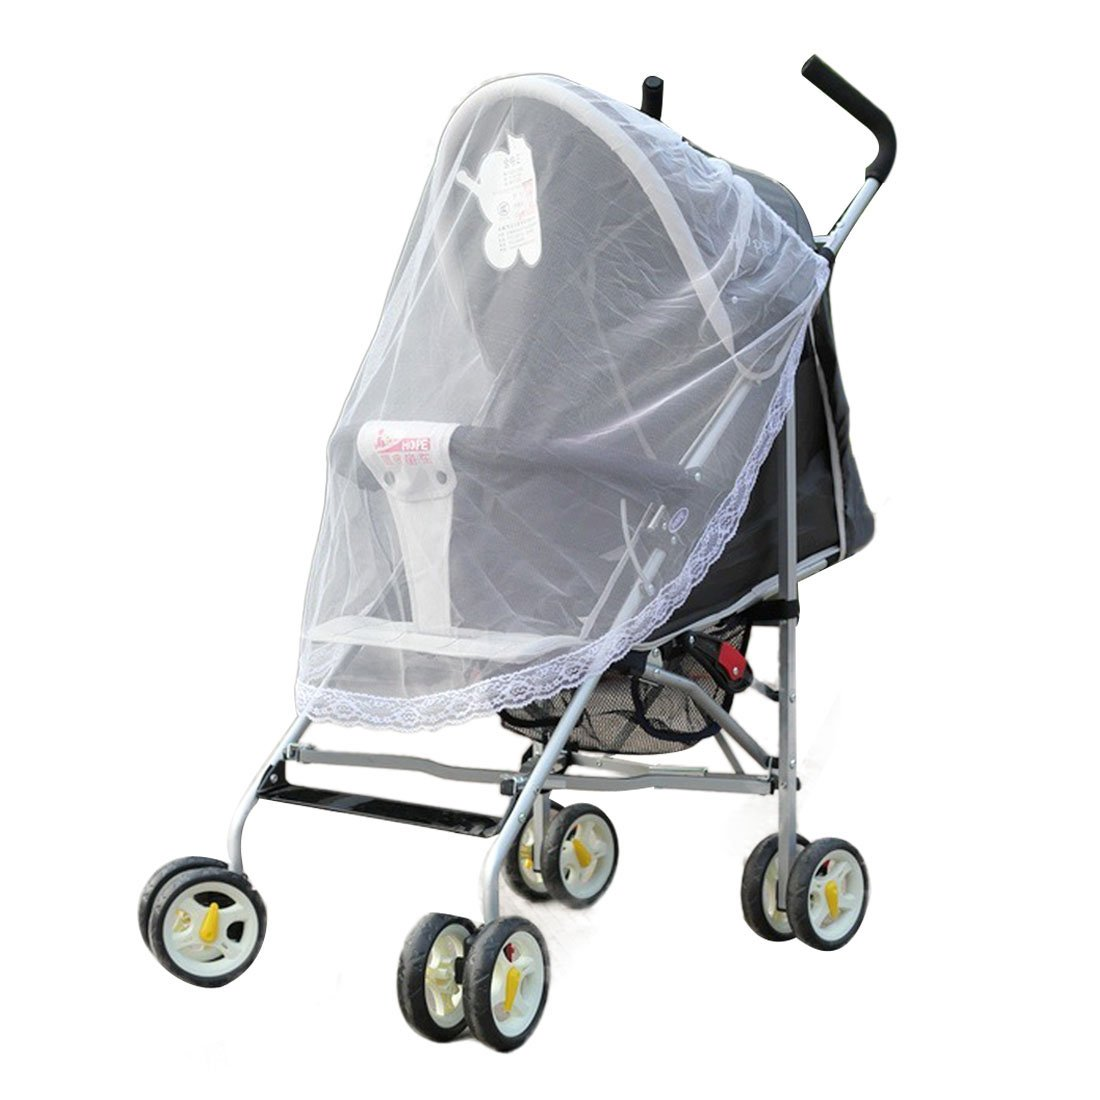 Voberry Universal Lace Safe Baby Stroller Cradle Insect Mosquito Netting Cover